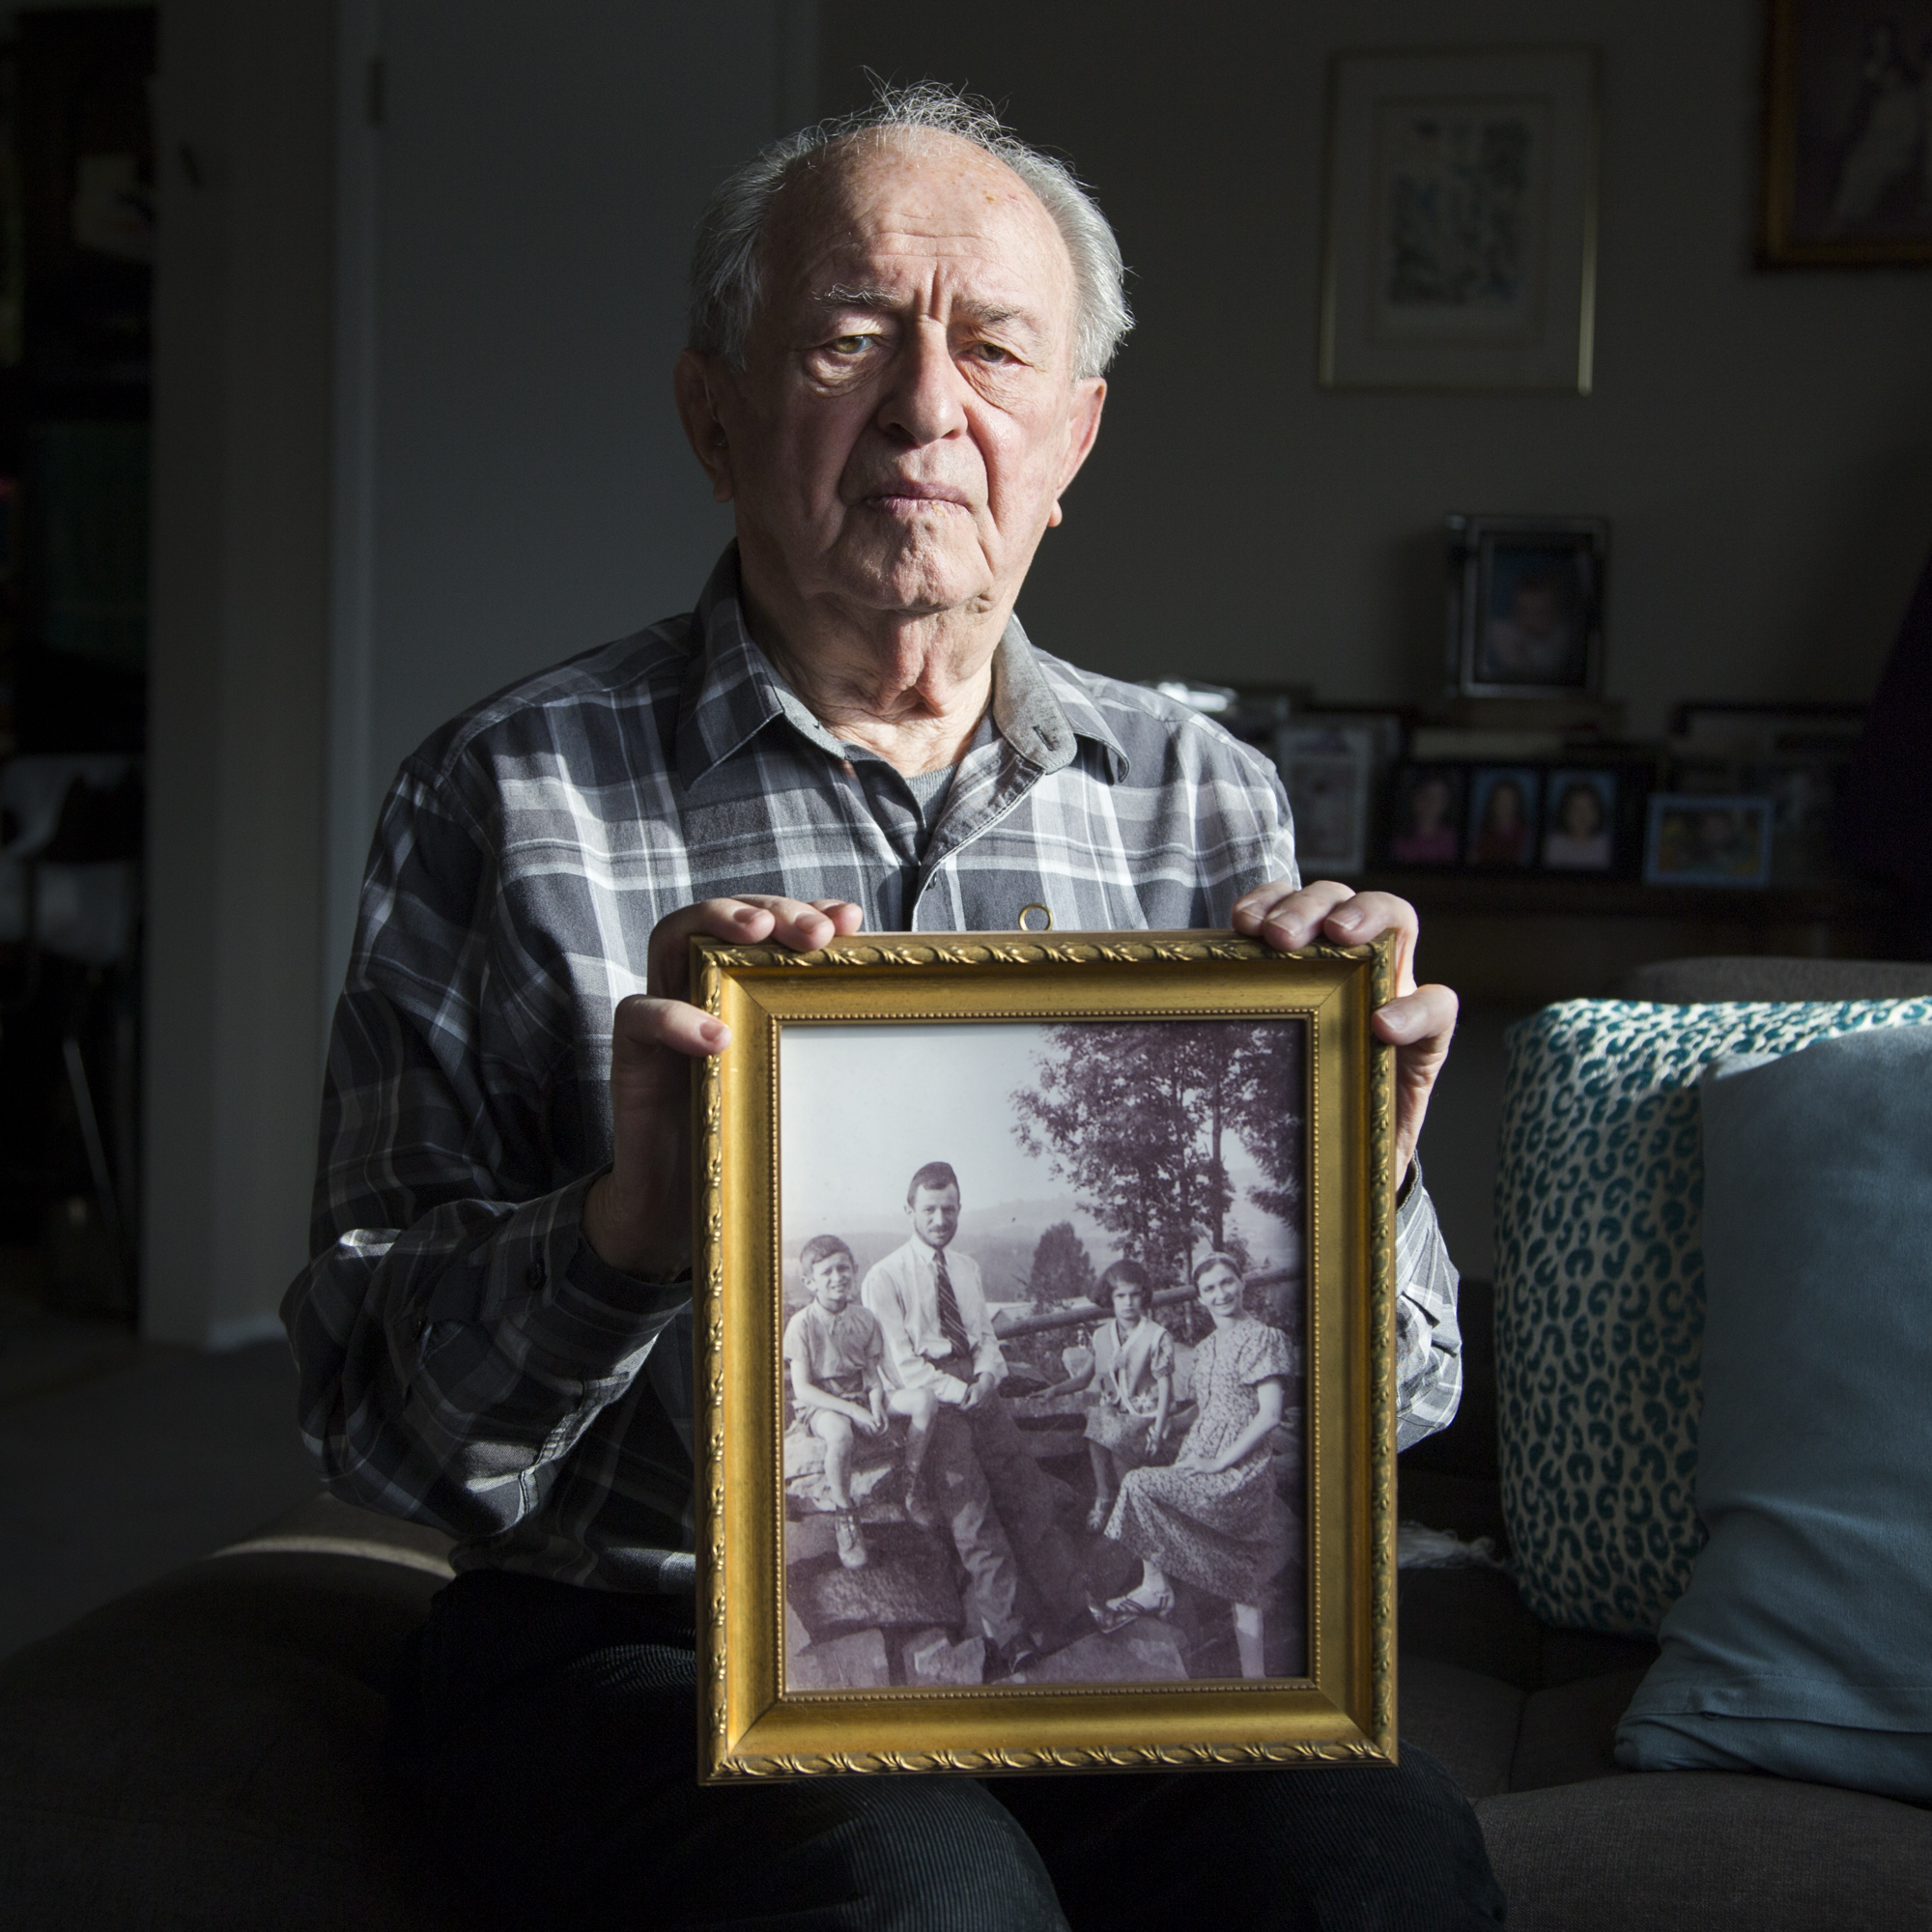 Holocaustsurvivor Arthur Spielman holds a photograph of his family just before the World War II broke out. The whole family survived, living with fake Roman Catholic papers in Hungary, but he lost all of his extended family in theHolocaust.